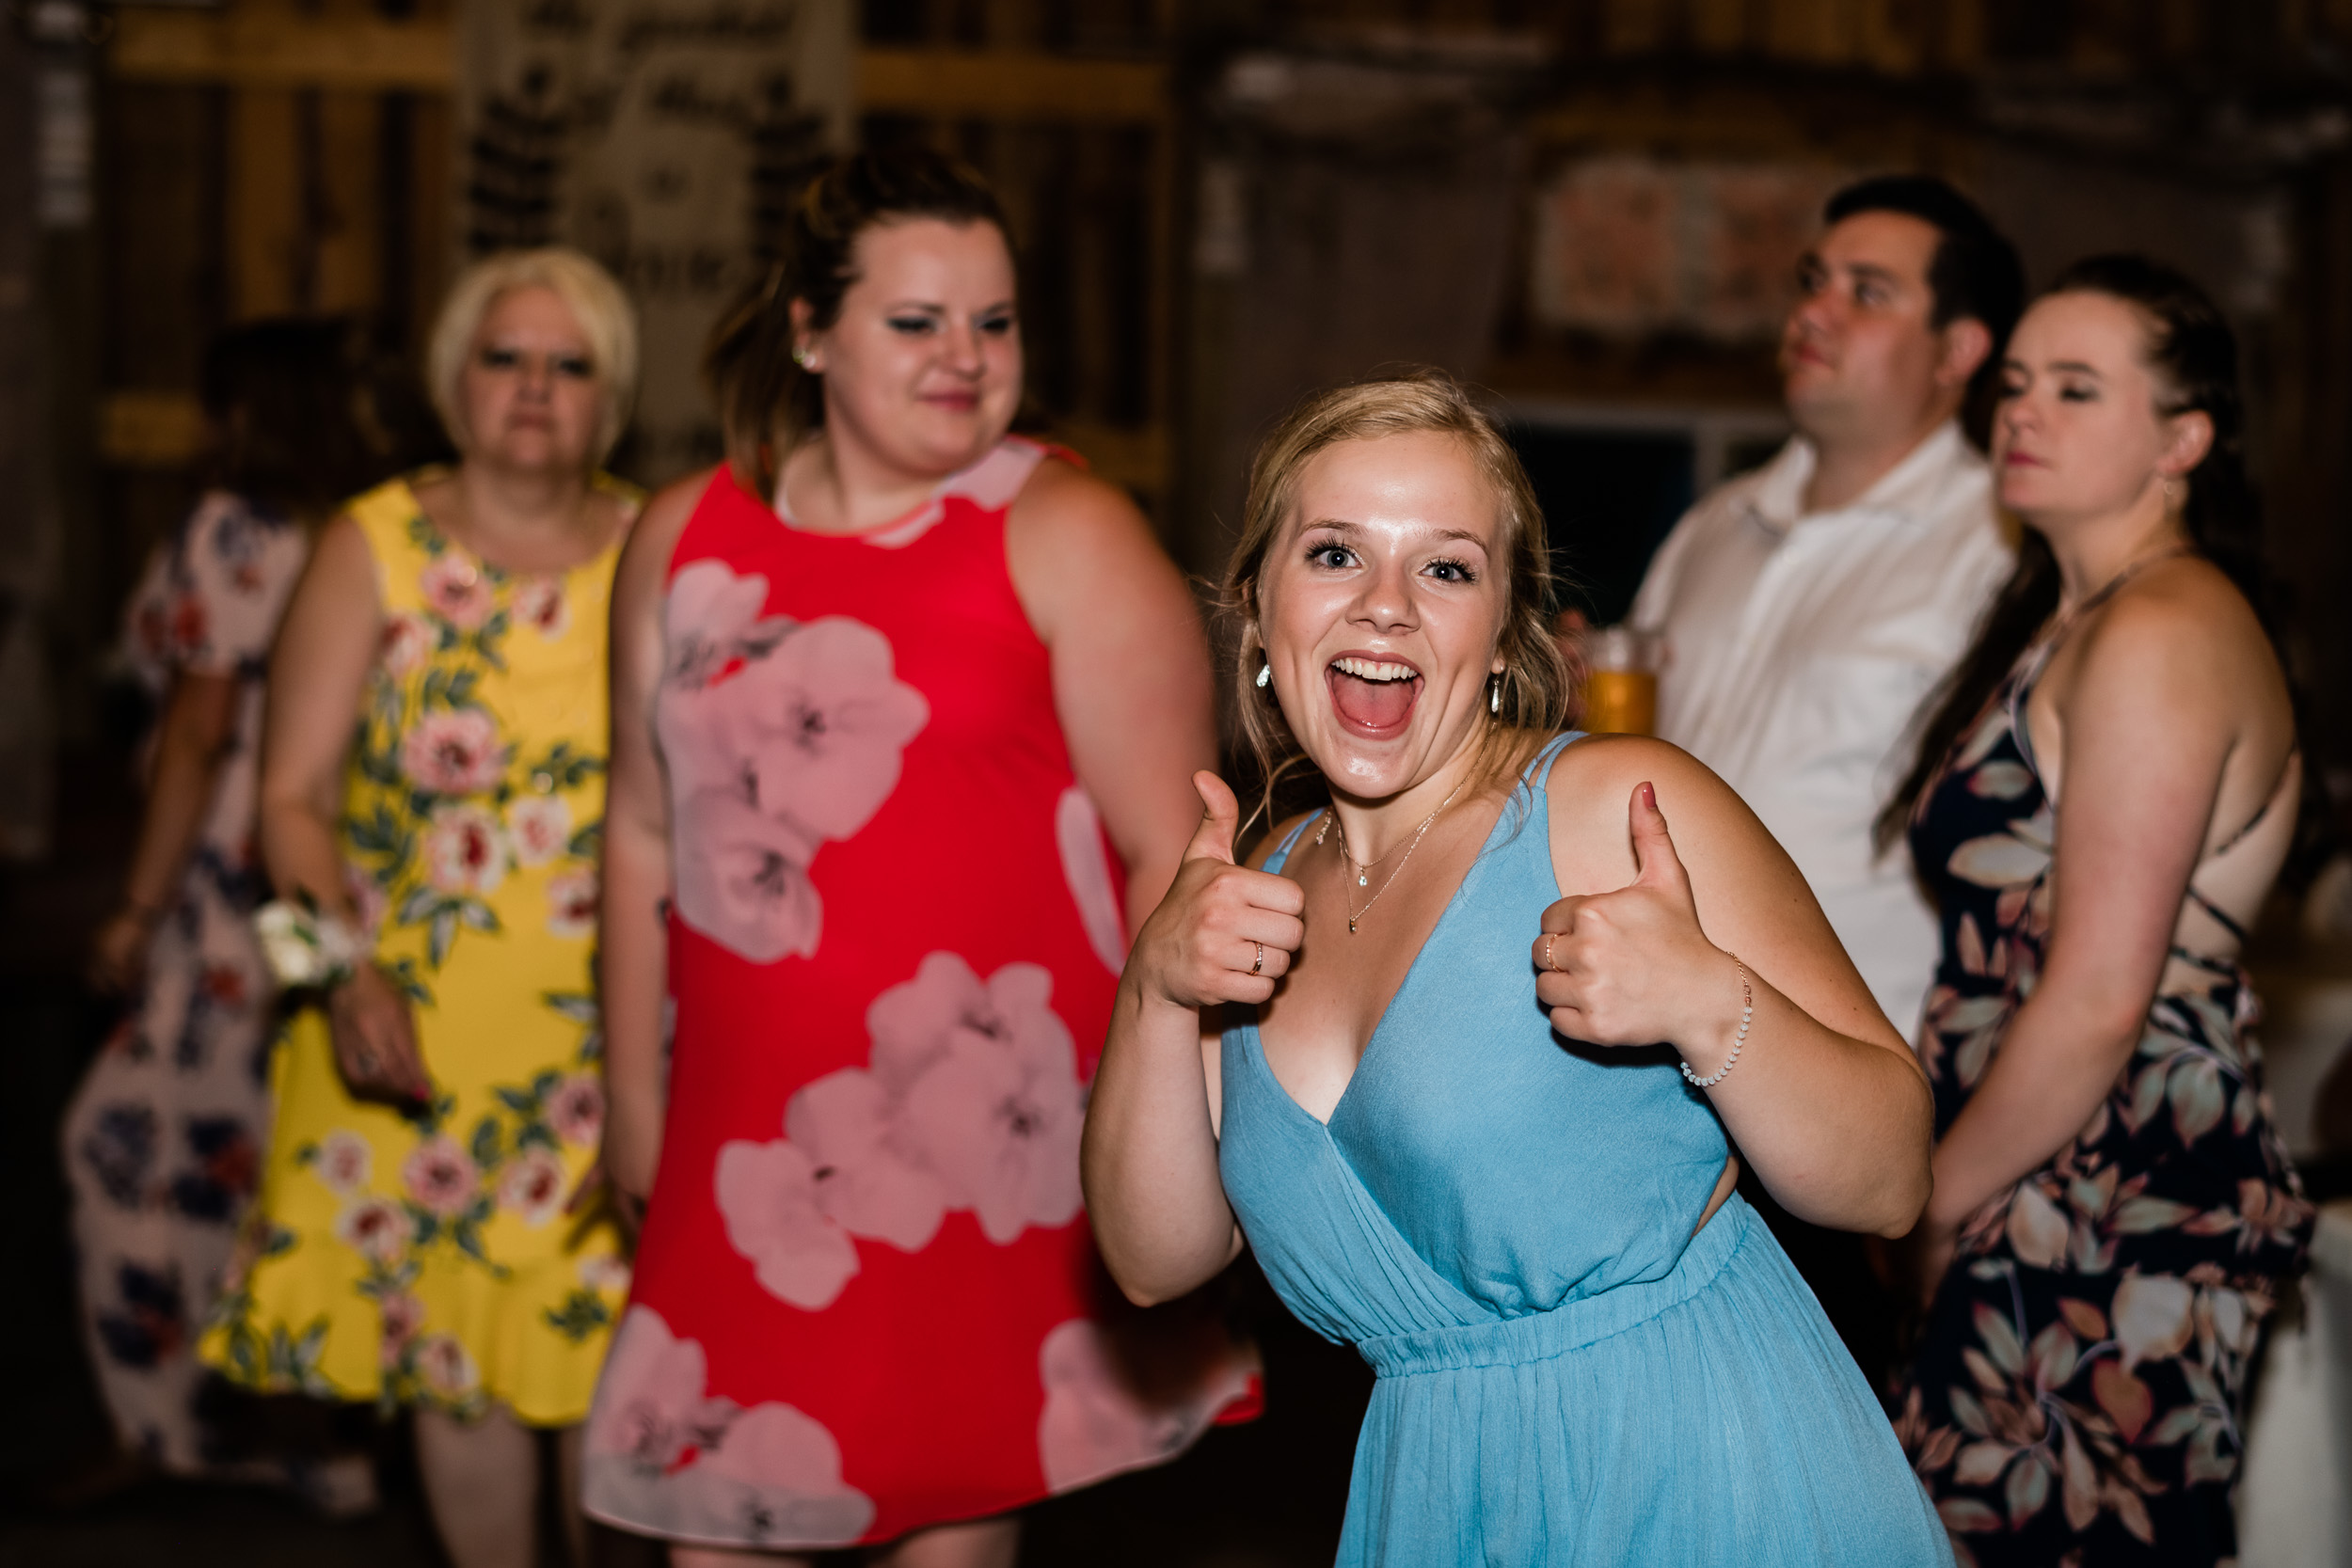 Wedding guest with thumbs up